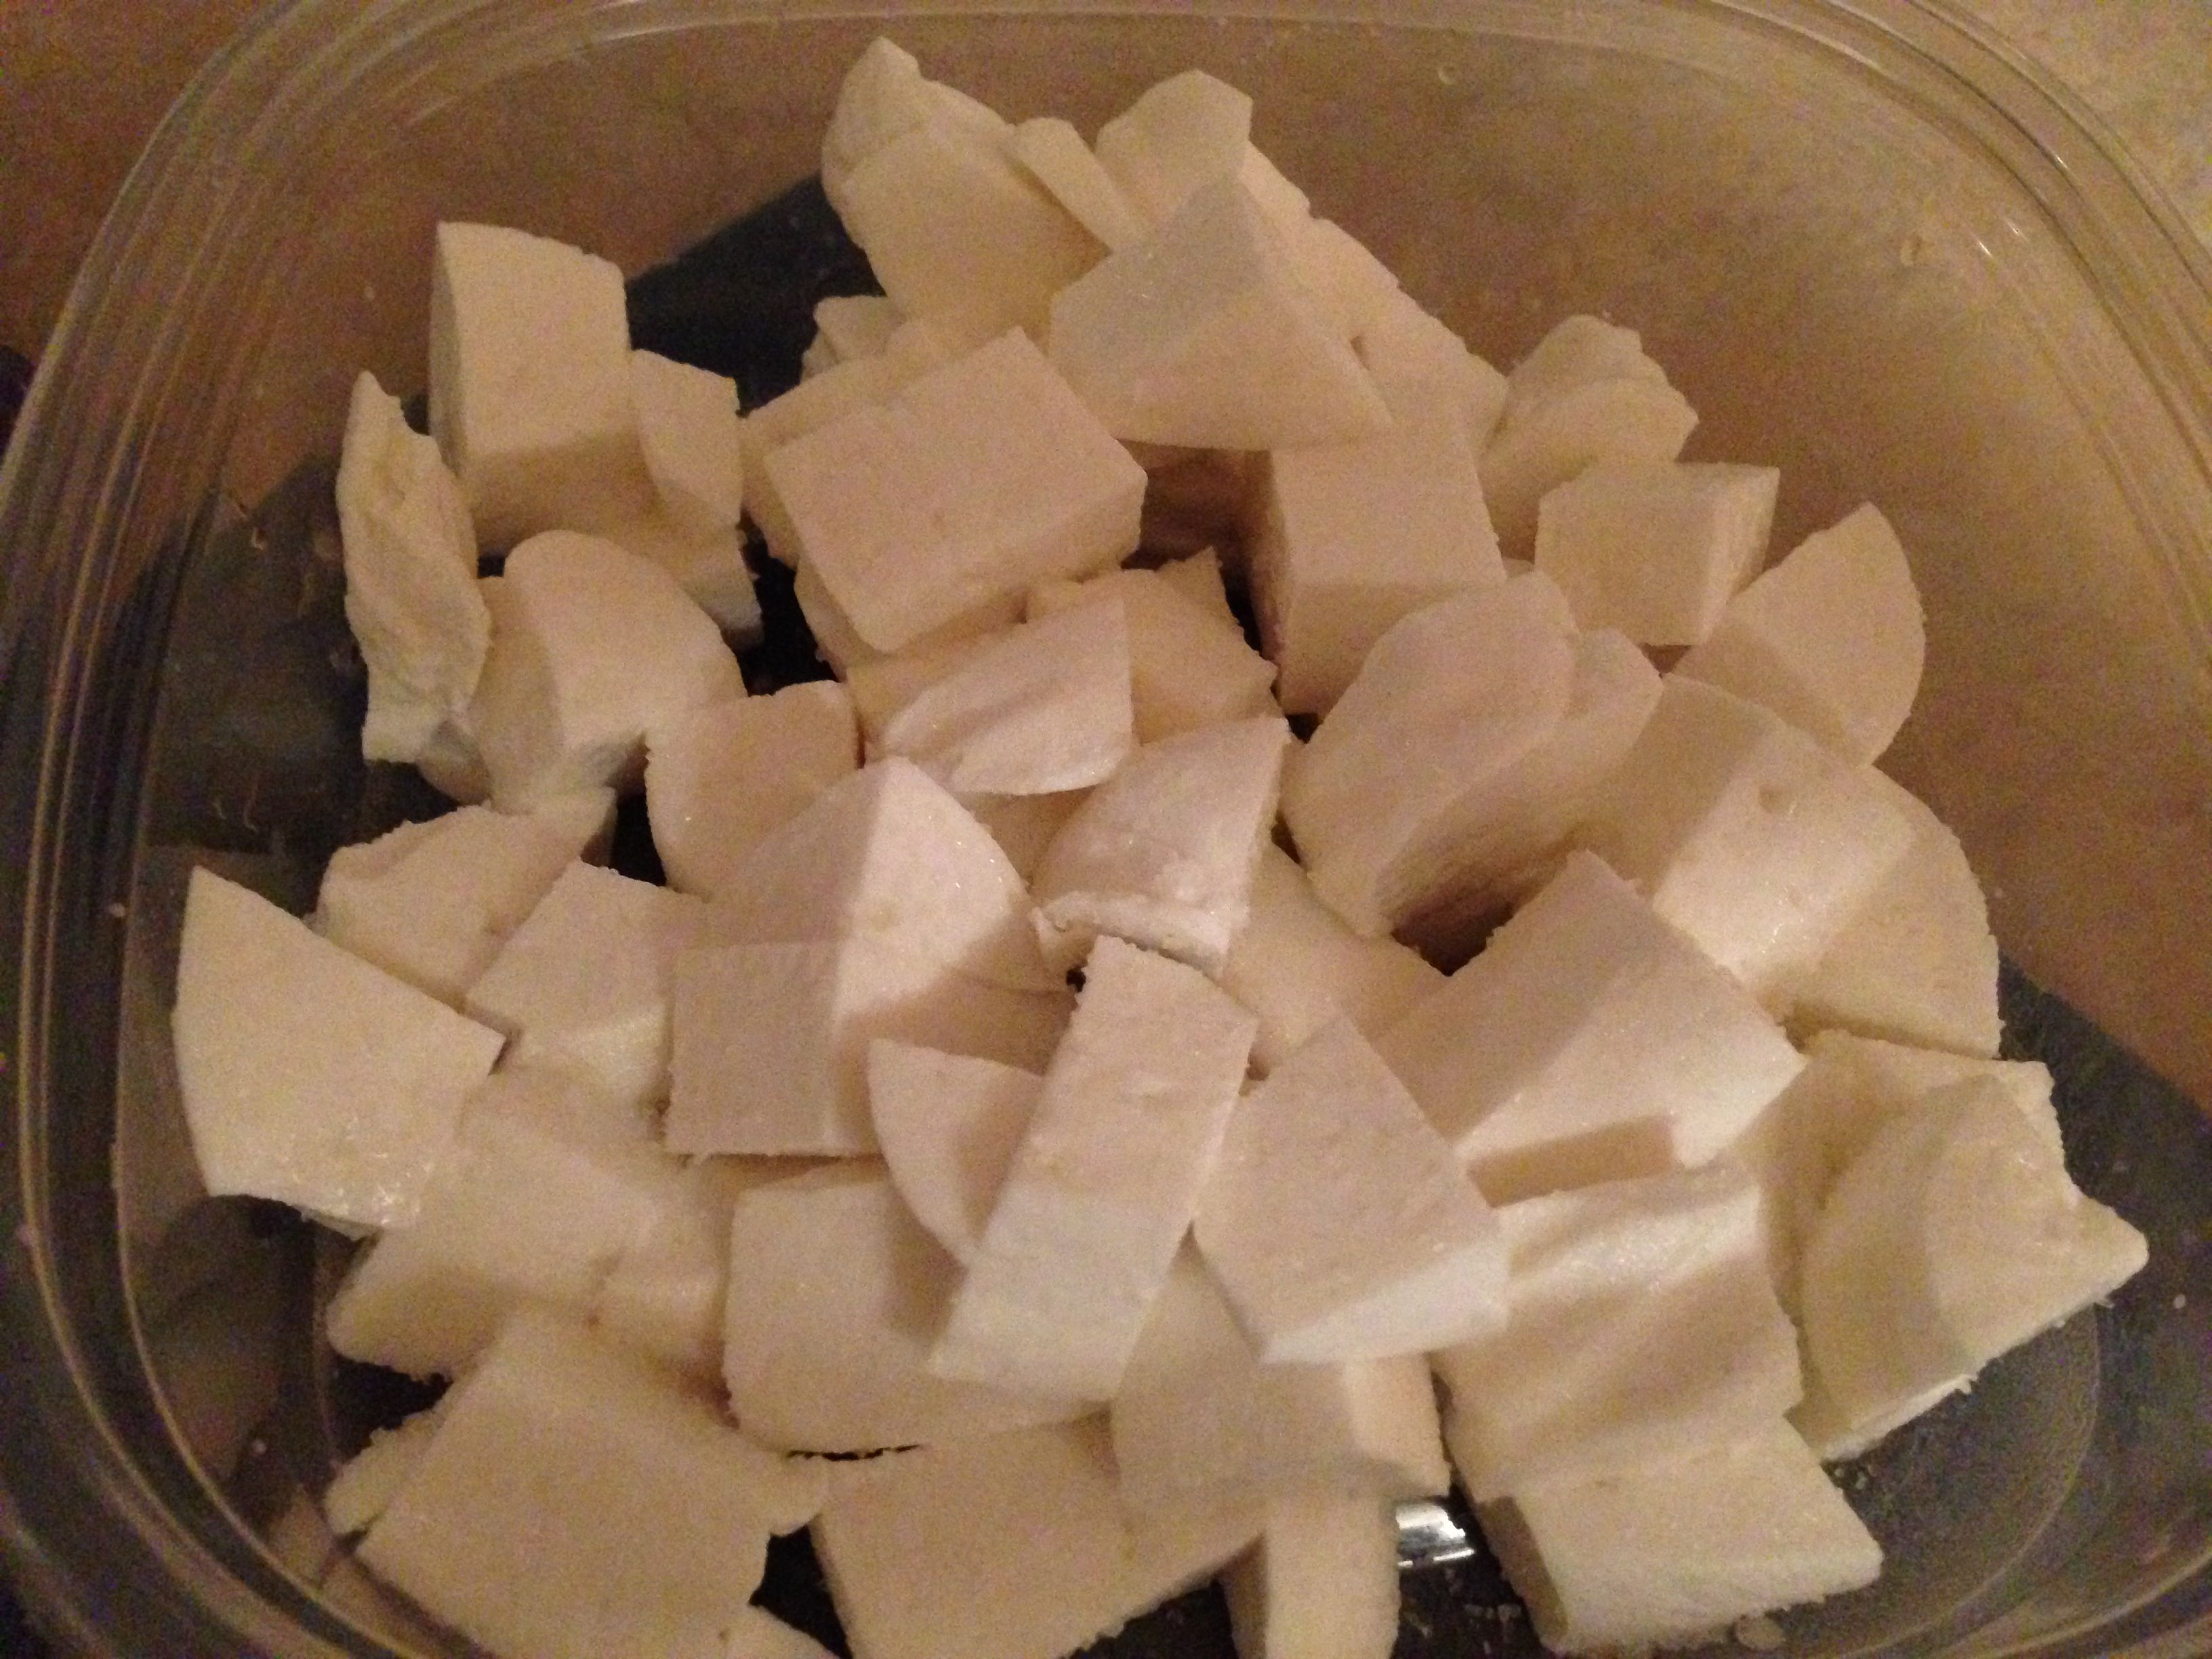 Salted feta cubes, ready to ripen for a week.